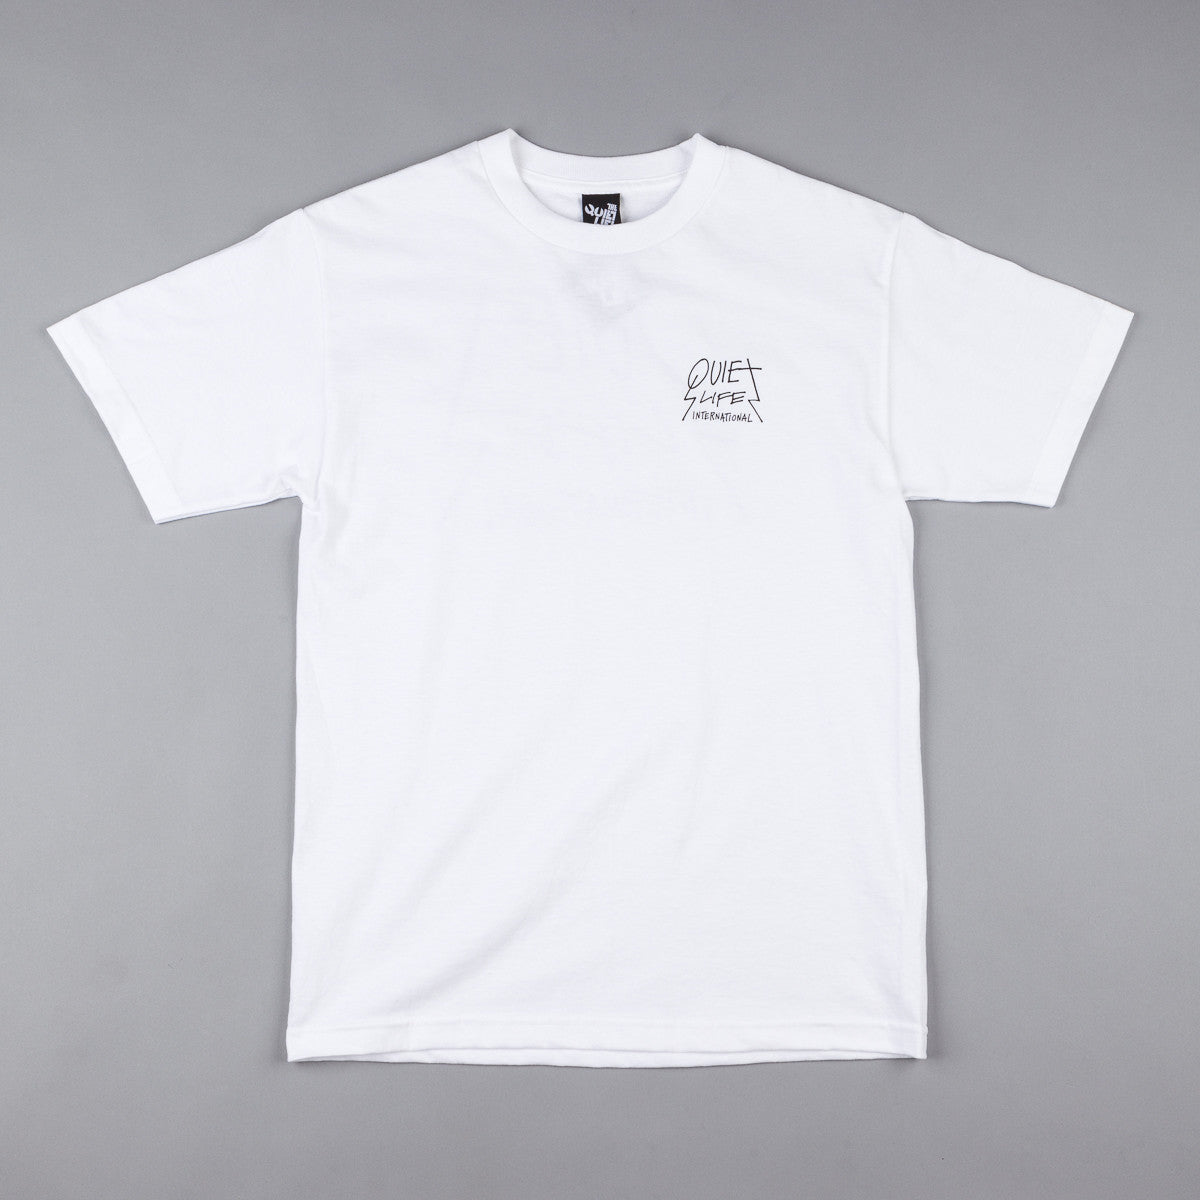 The Quiet Life International T-Shirt